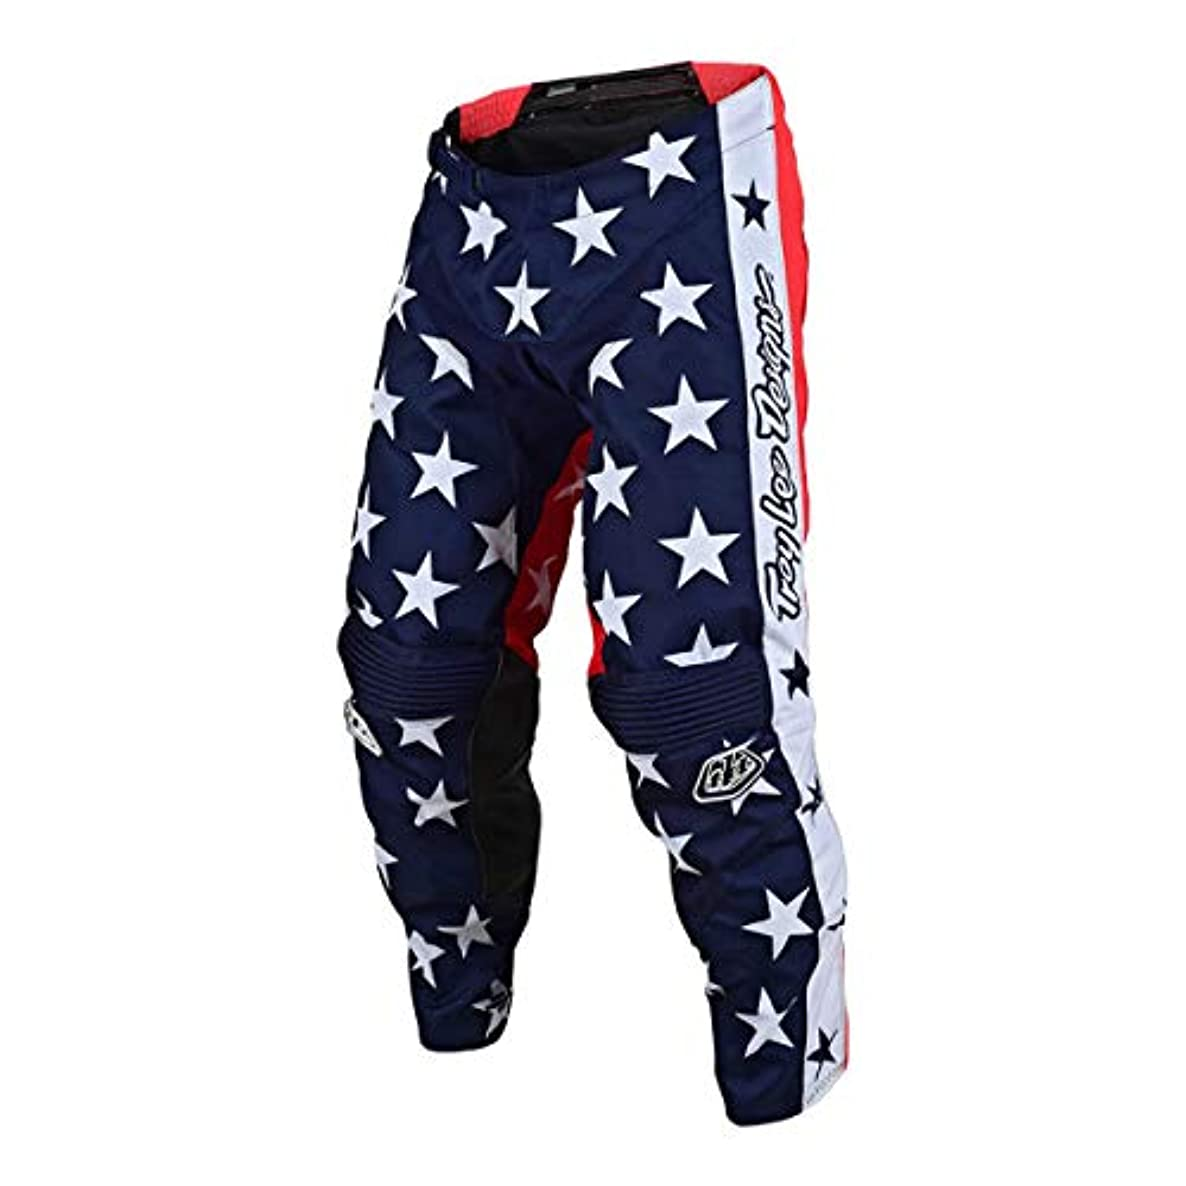 Troy Lee Designs GP Independence Limited Edition Men's Off-Road Motorcycle Pants - Navy/Red / 28